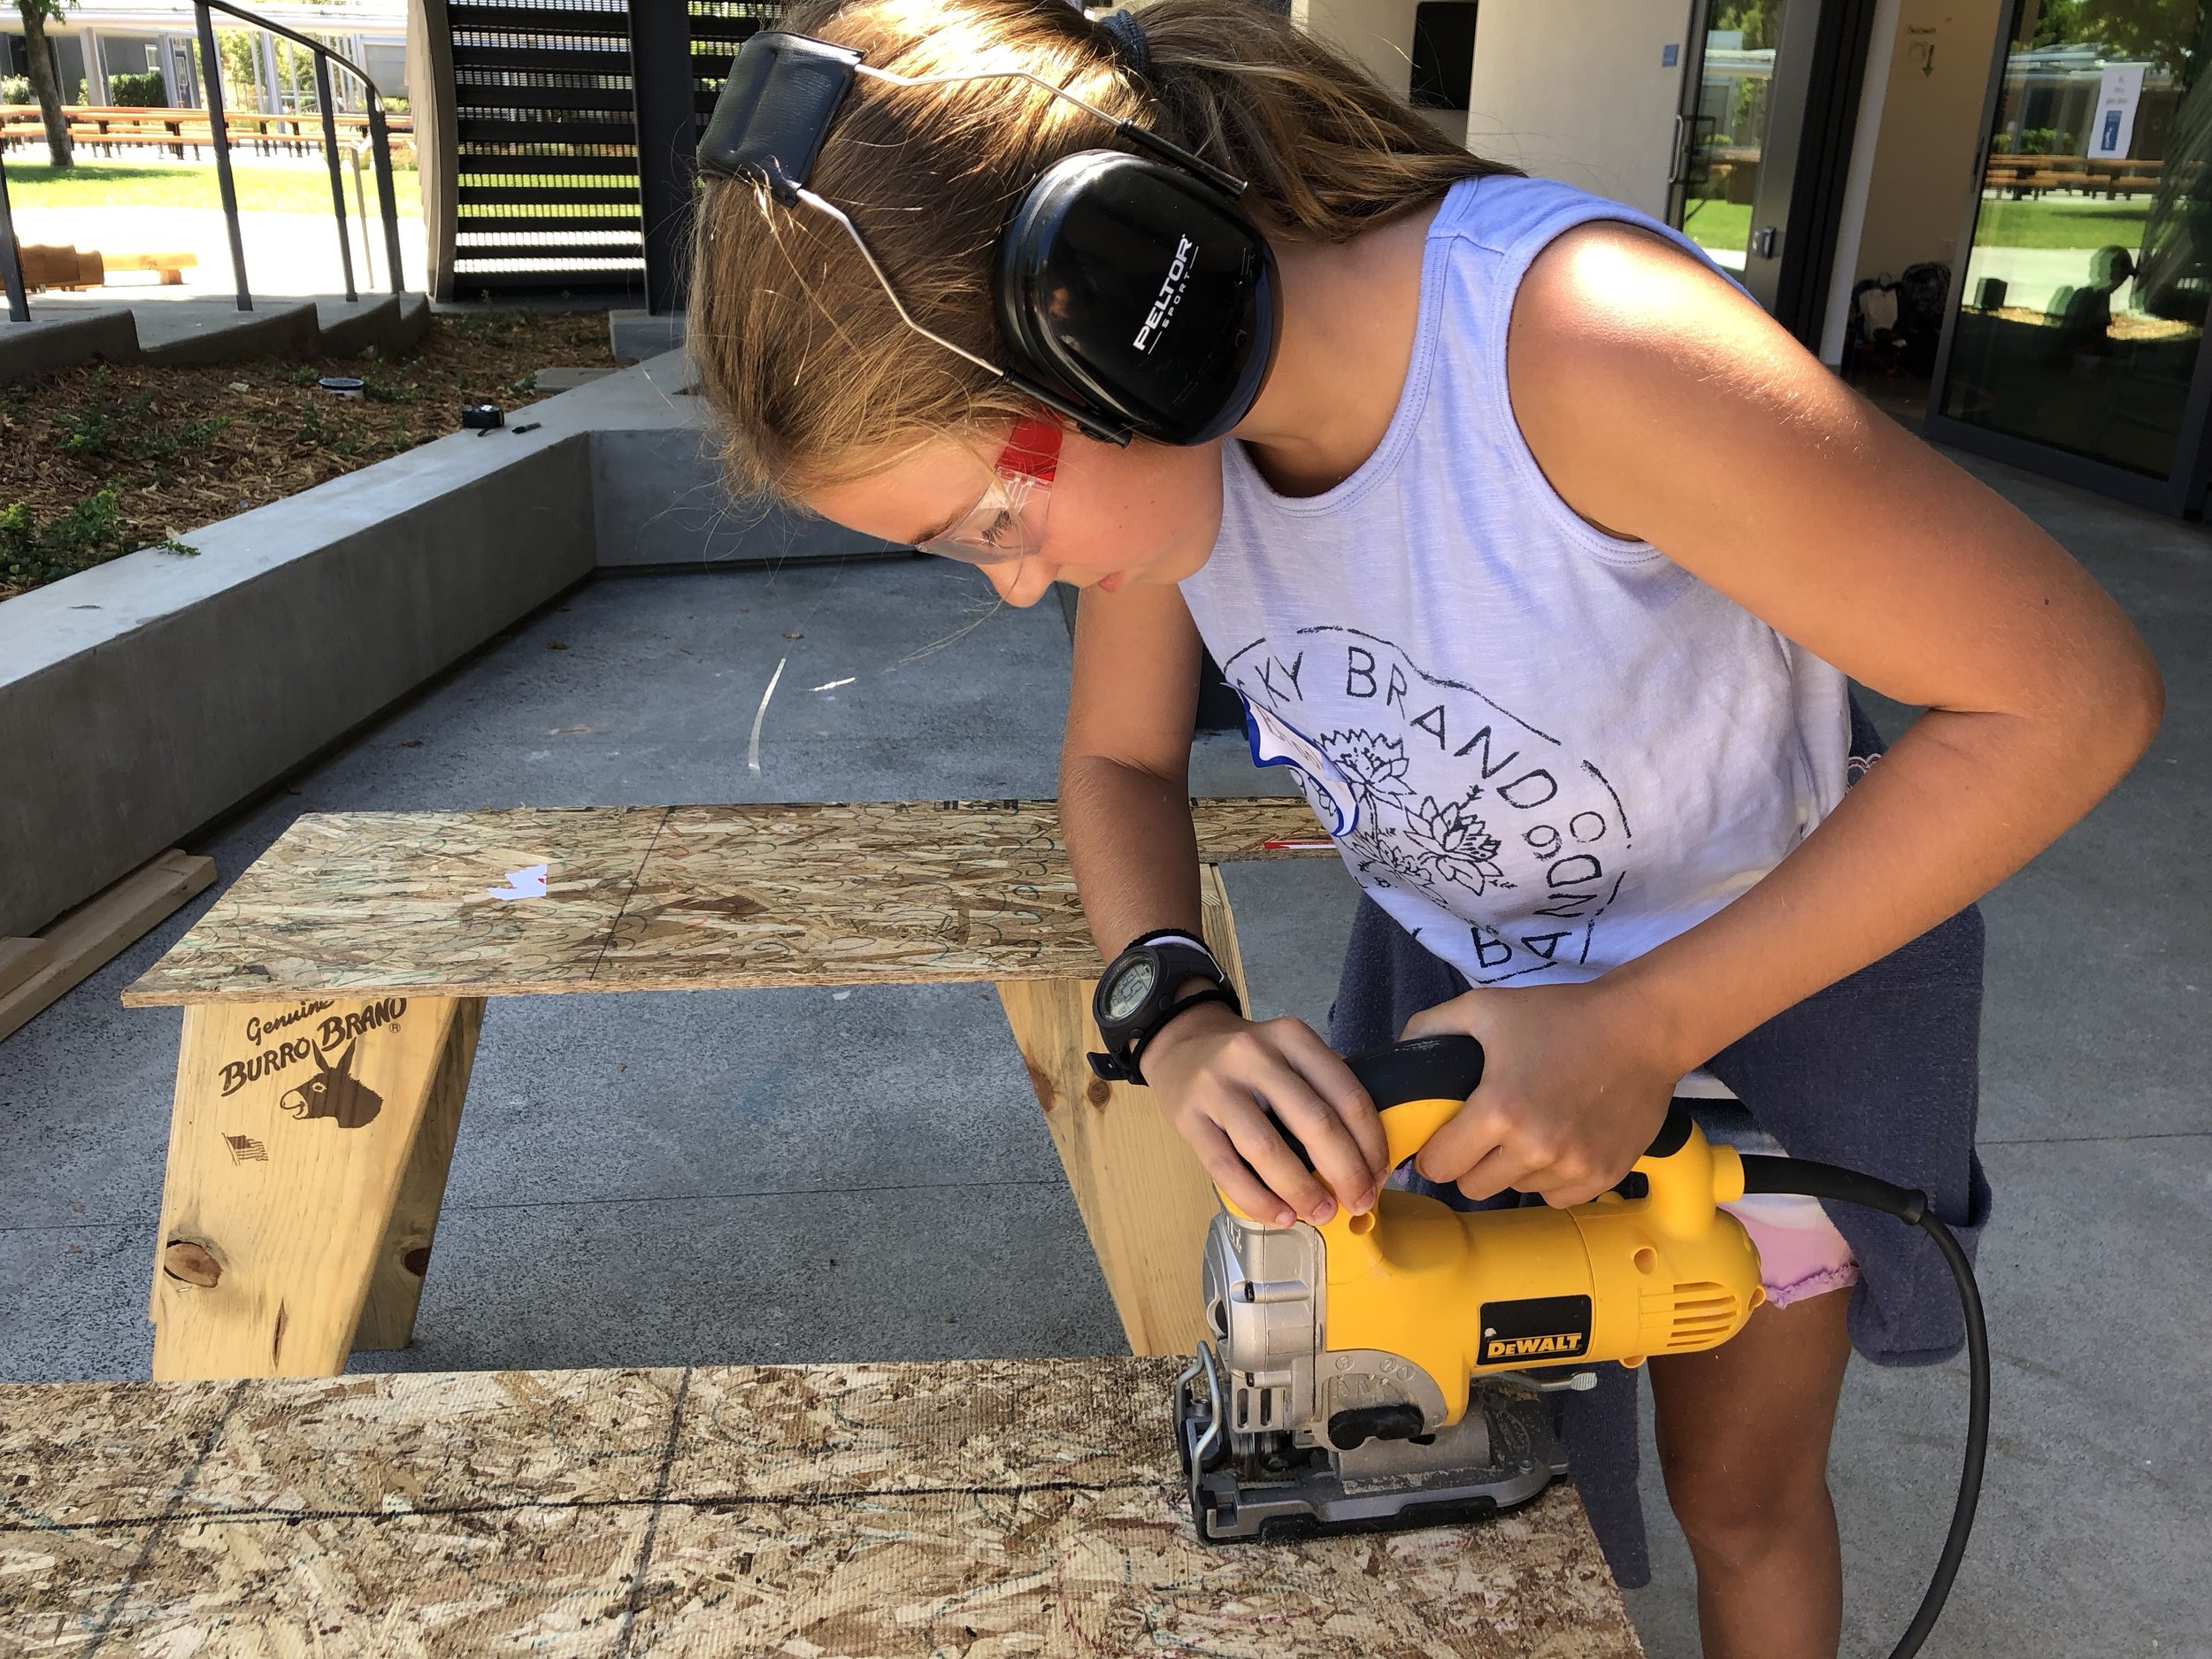 """It takes several steps to be ready to use the jigsaw: measure and draw lines, clamp wood to sawhorse, put on ear protection and goggles, """"is everybody ready?"""" safety call, and then it's time to cut."""